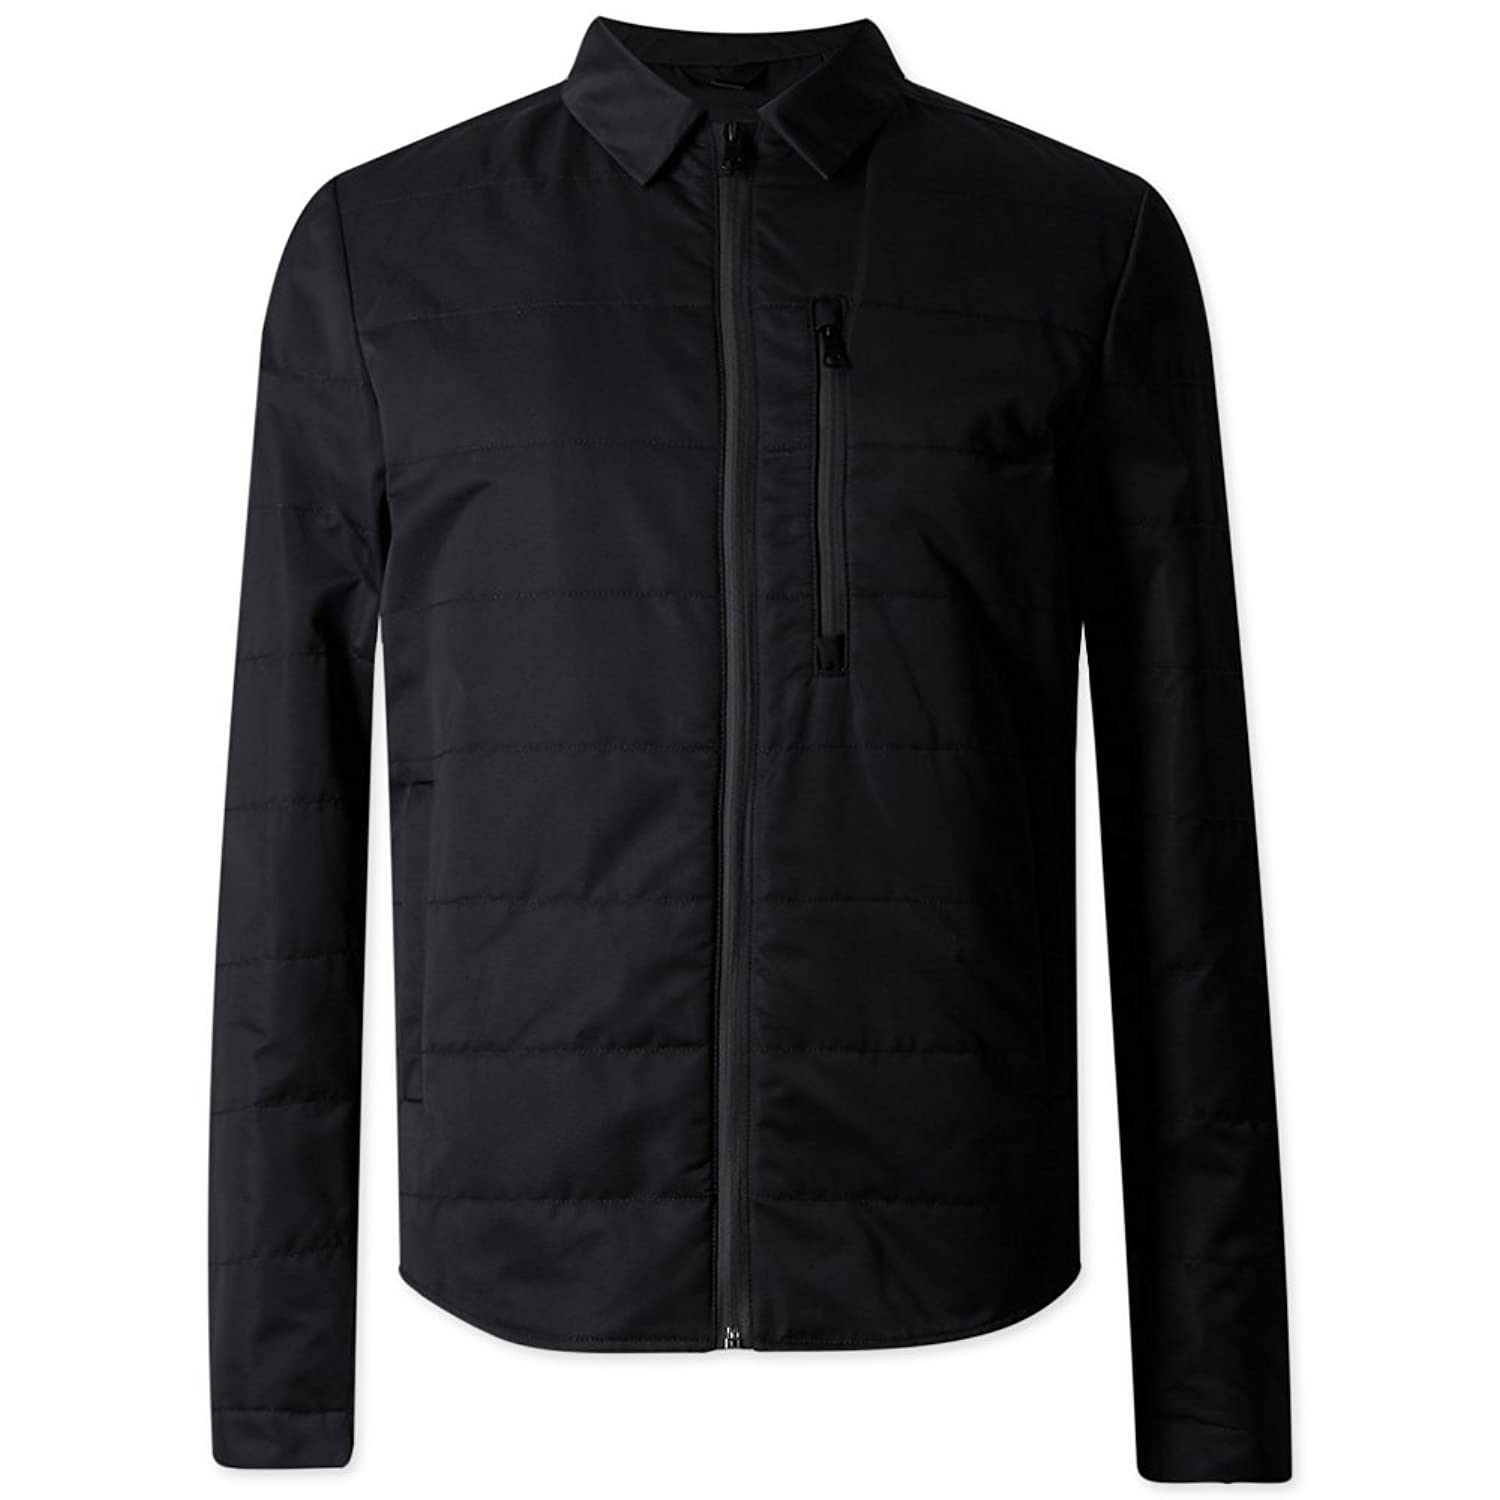 Marks & Spencer Autograph Collection T167375 A Modern Shirt Jacket With Stormwear Rrp £89 by Amazon